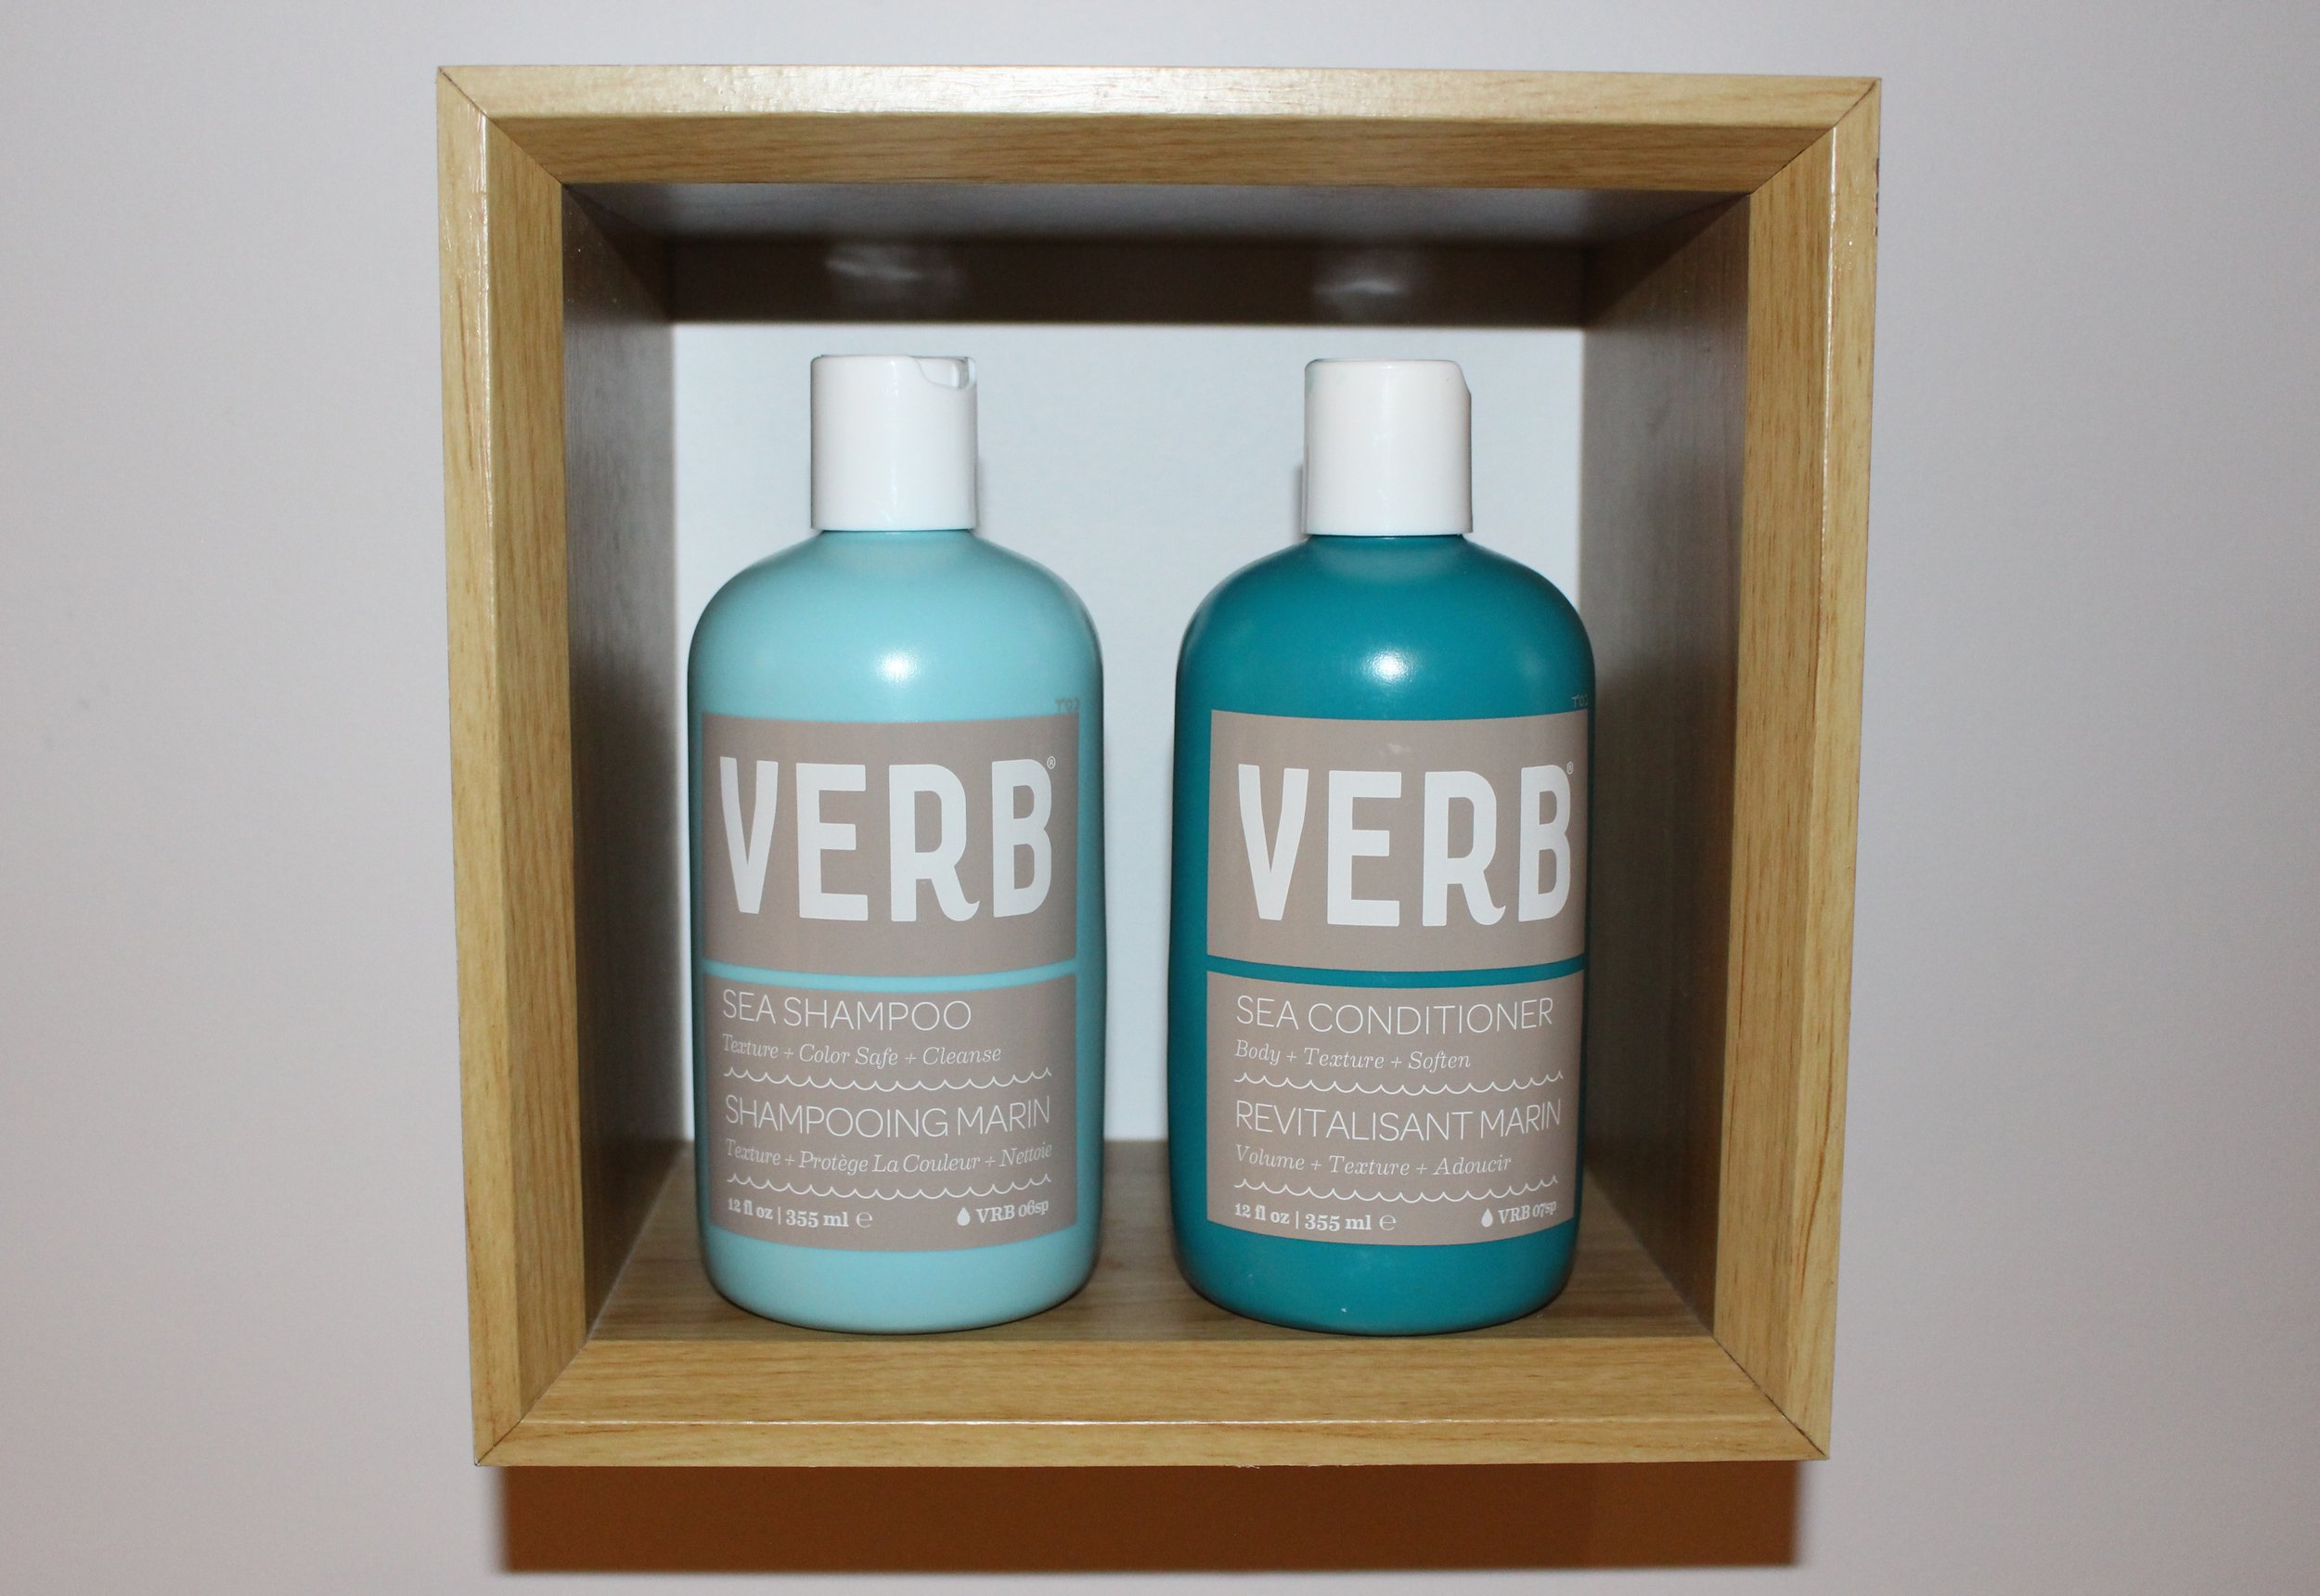 My favourite hair product